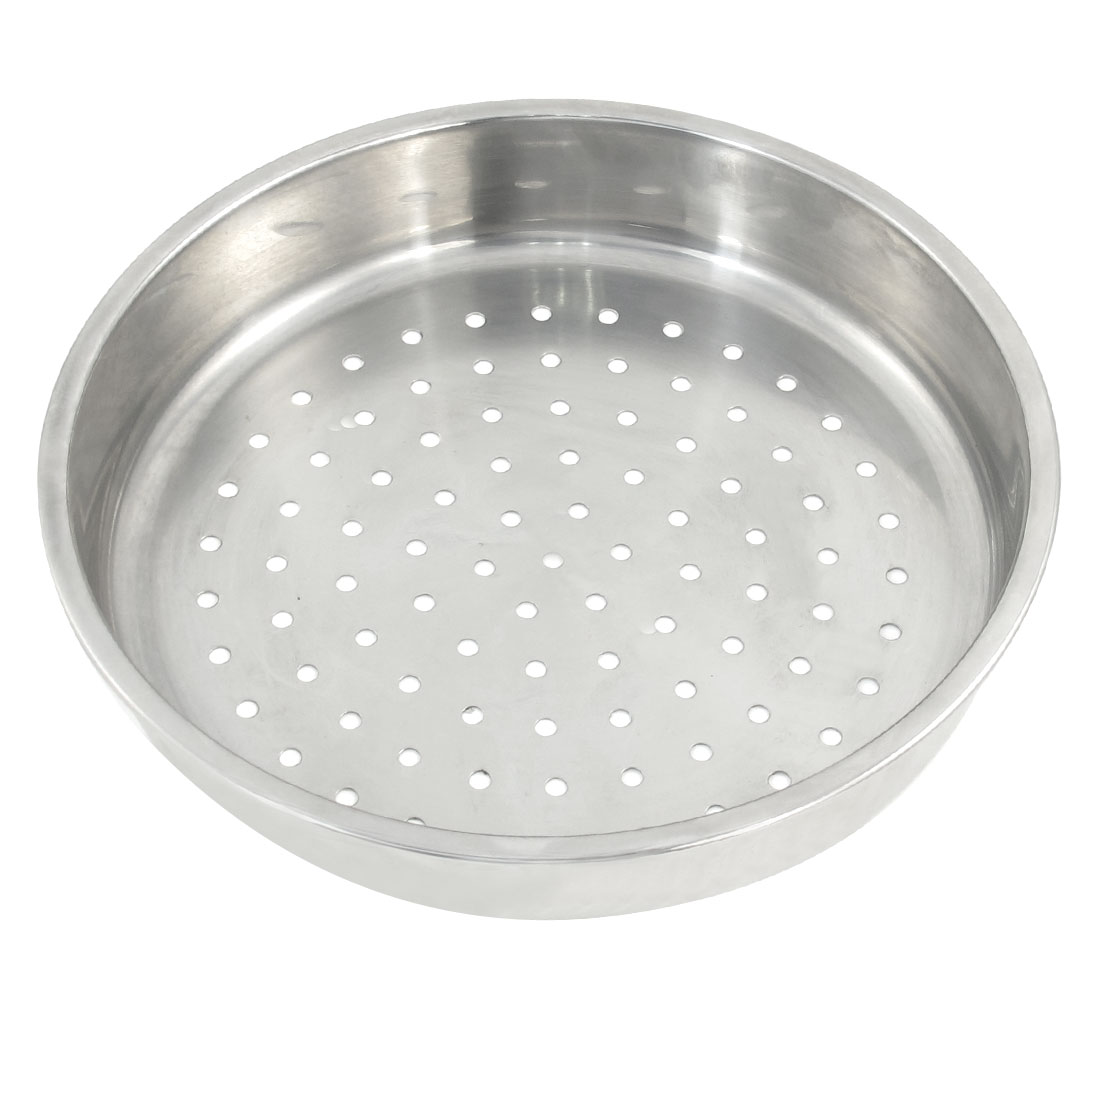 "Household 9.5"" Dia Stainless Steel Perforated Food Steaming Steamer Rack"